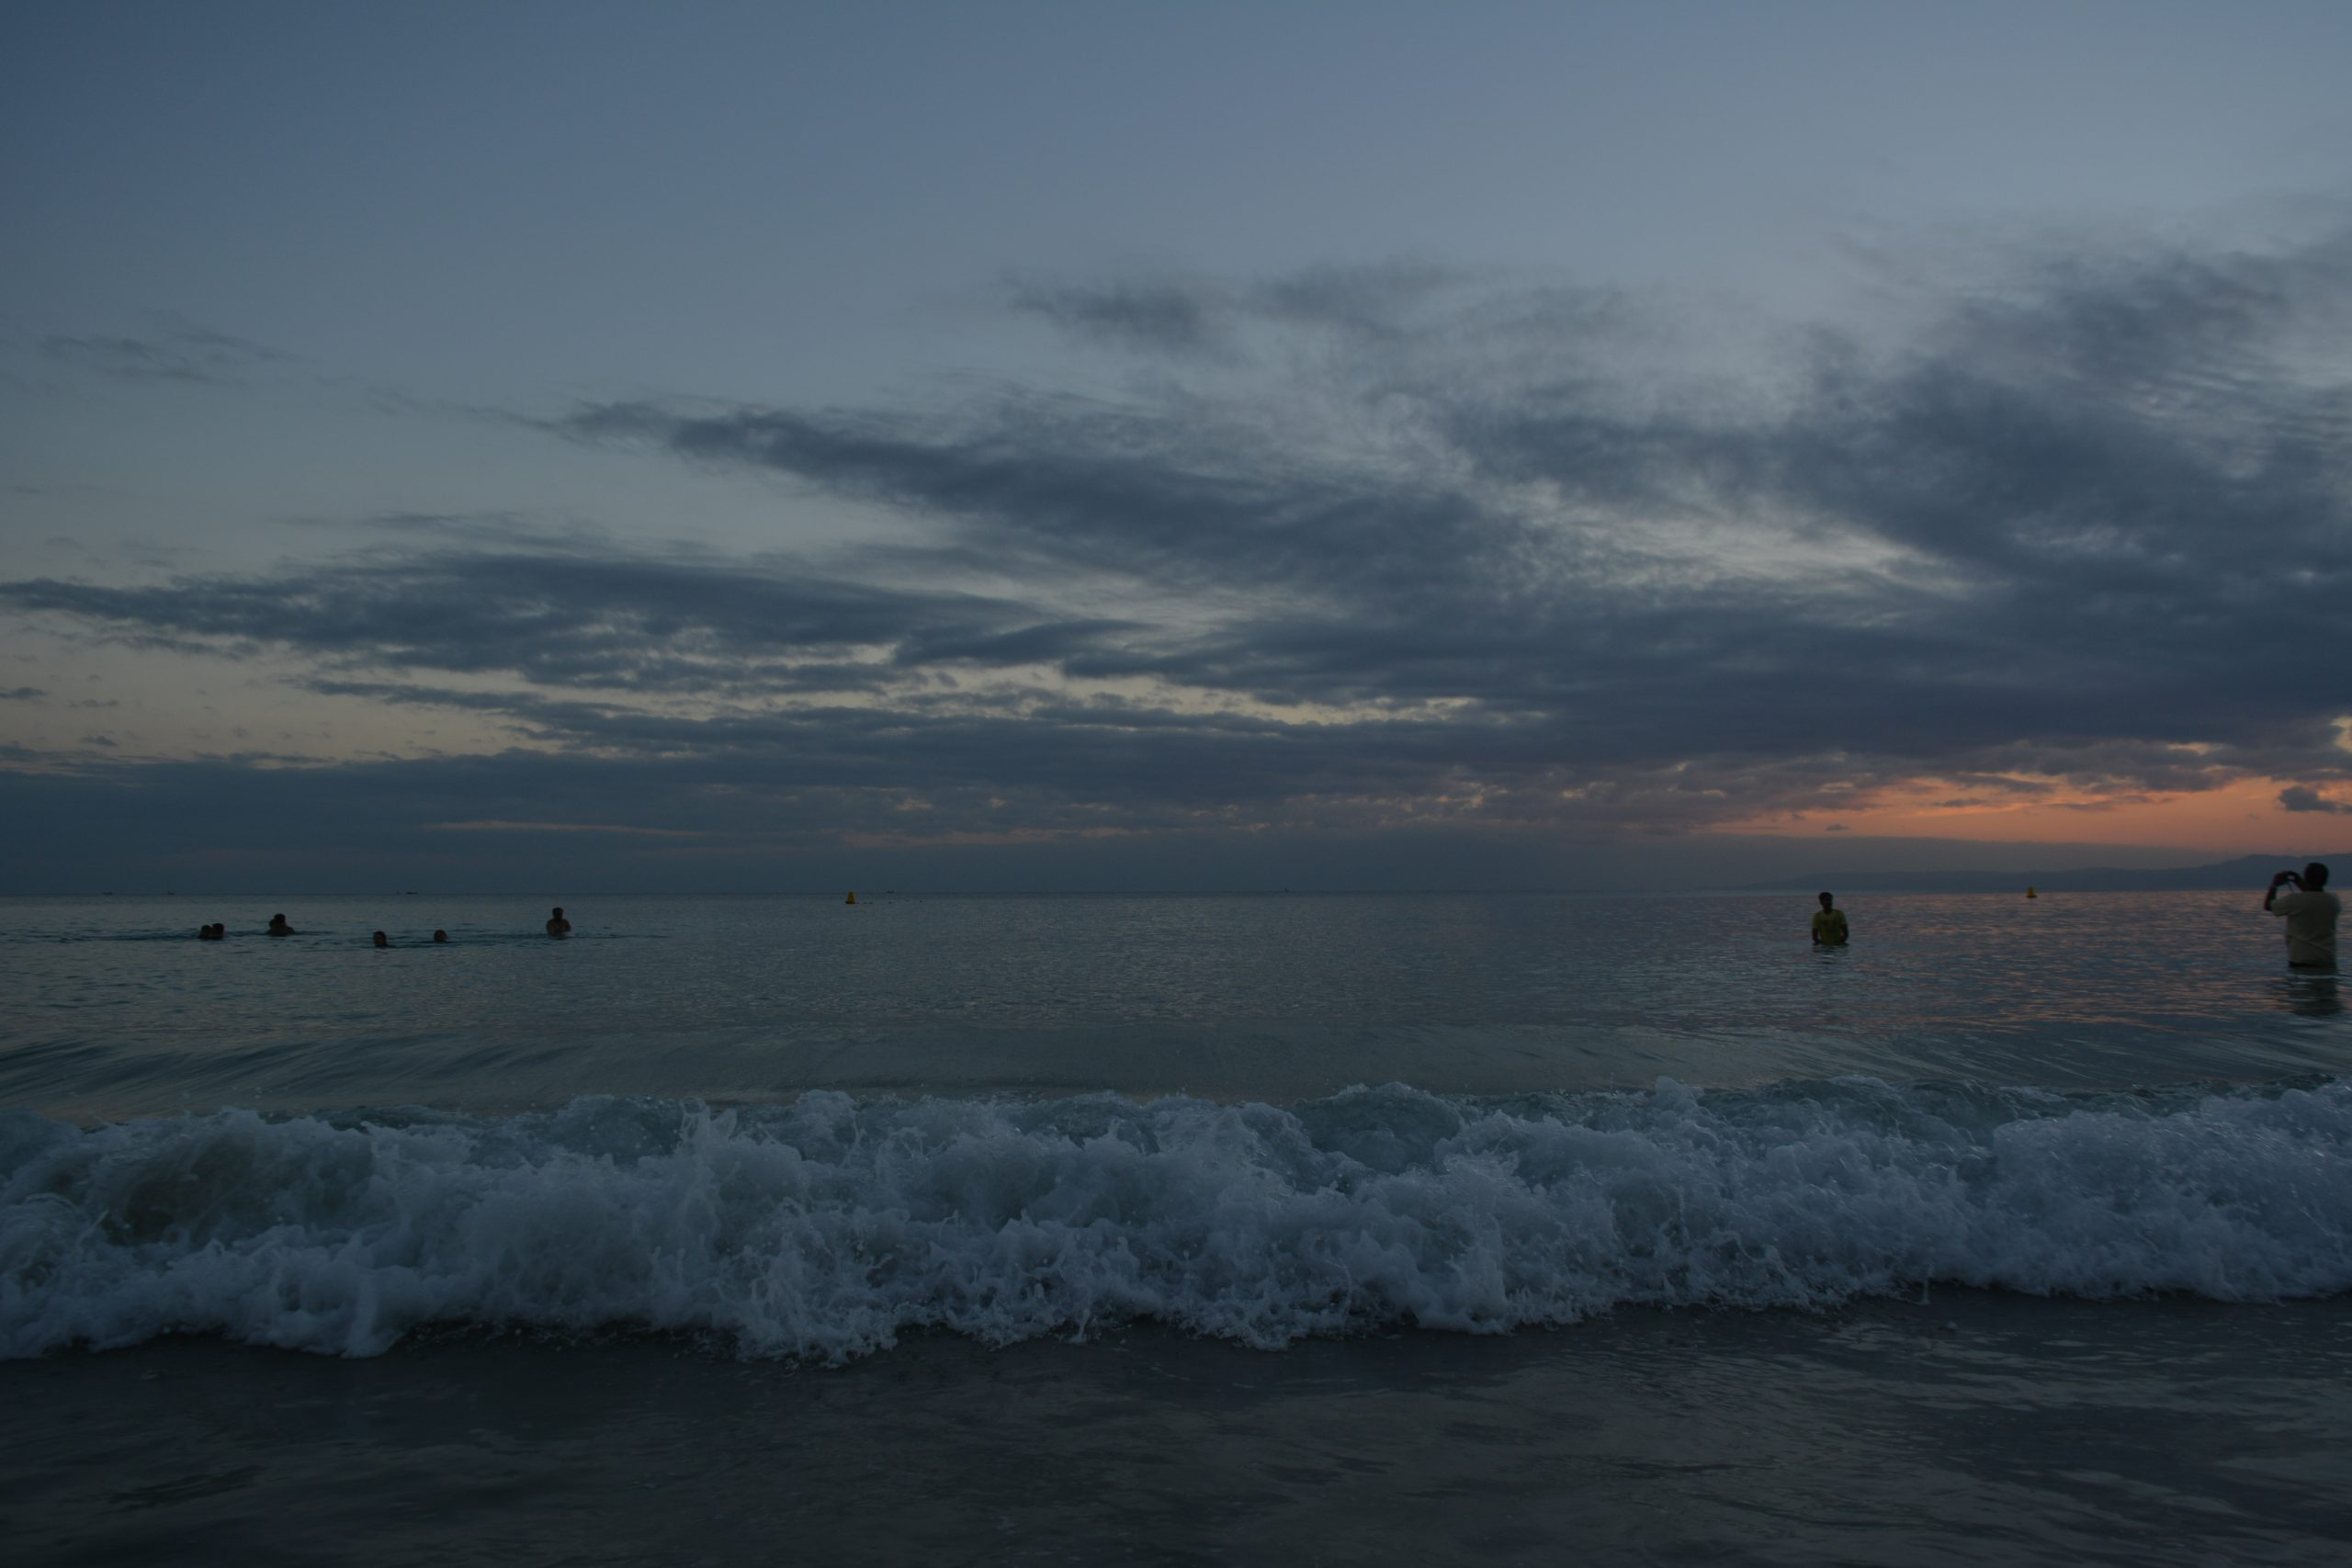 Sea waves in evening